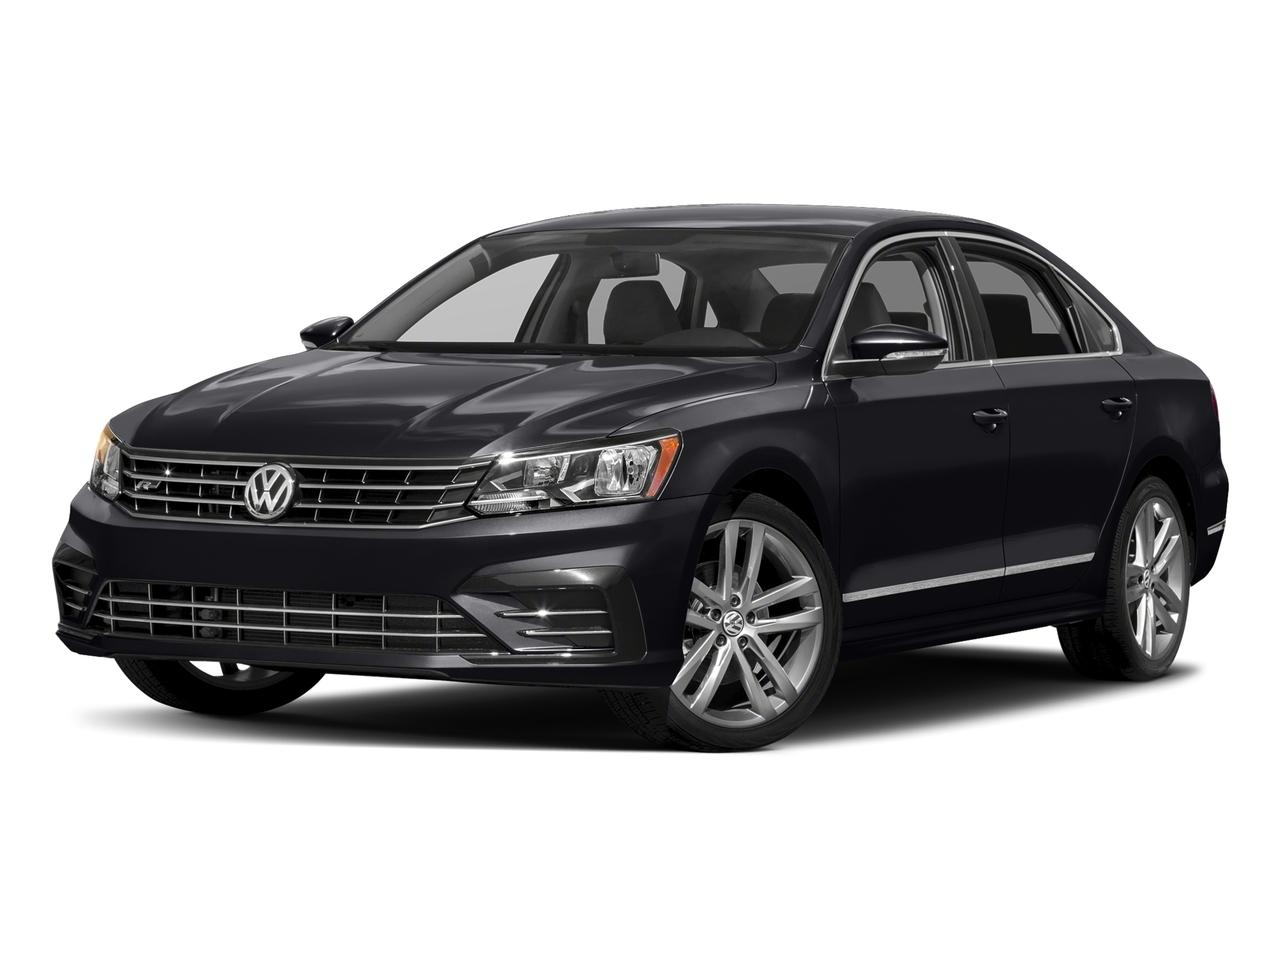 2018 Volkswagen Passat Vehicle Photo in Spokane, WA 99207